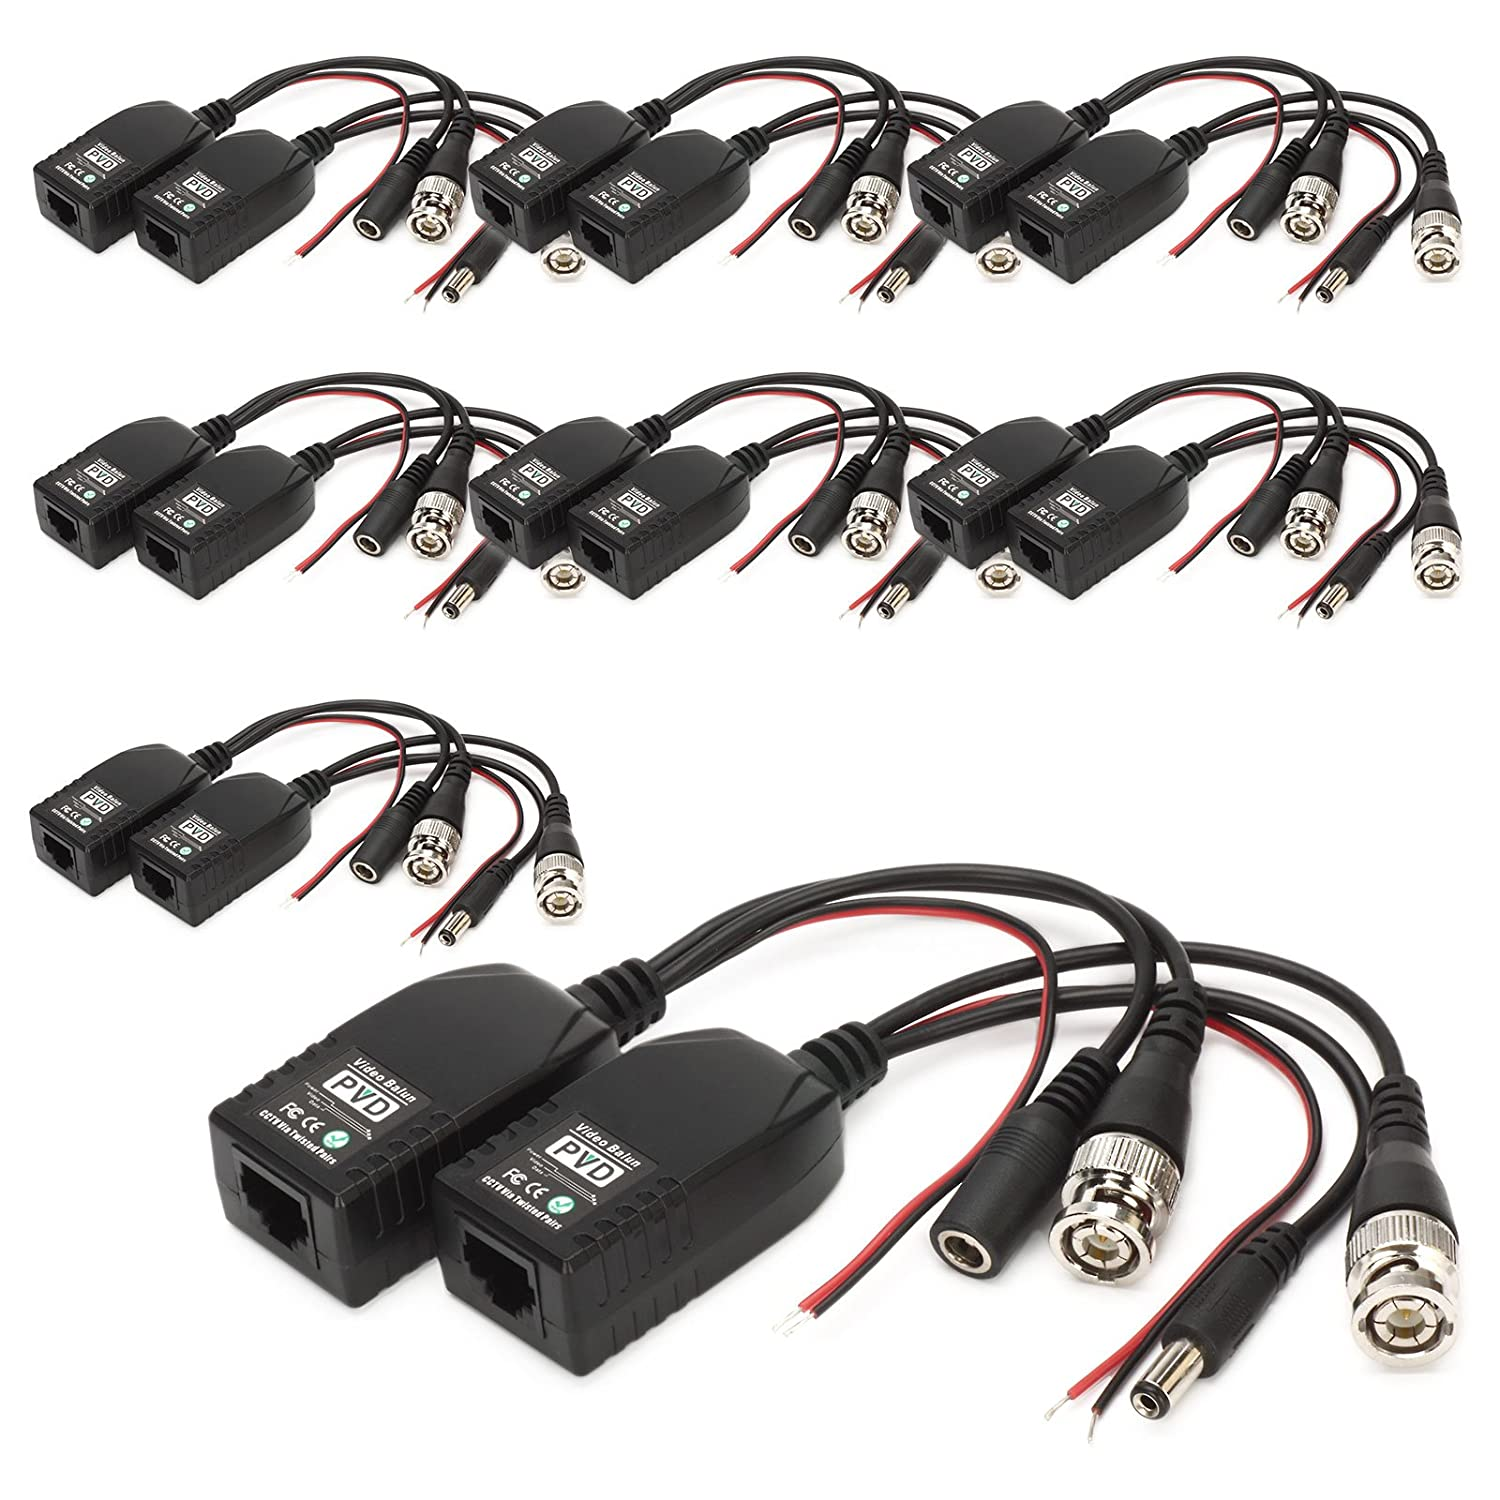 BNC to RJ45 CAT5 Video+Data+Power Balun Connector for CCTV PTZ Camera 2 Pairs